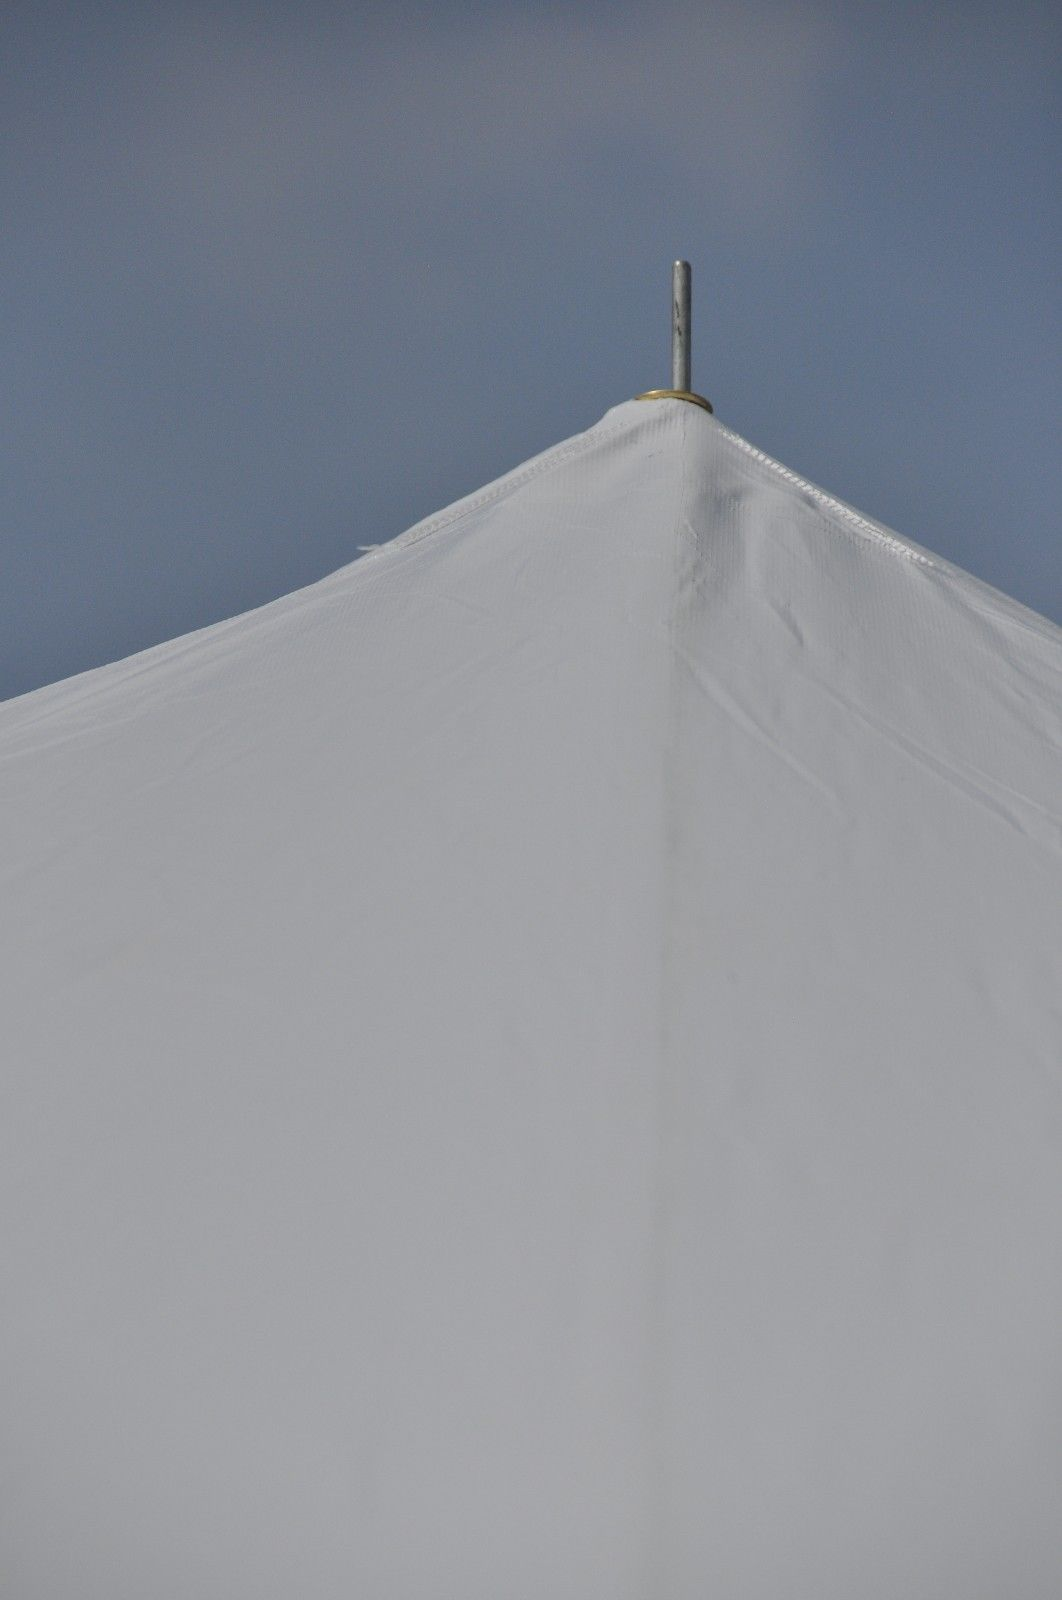 20 X 20 White Pole Tent Canopy Commercial Grade